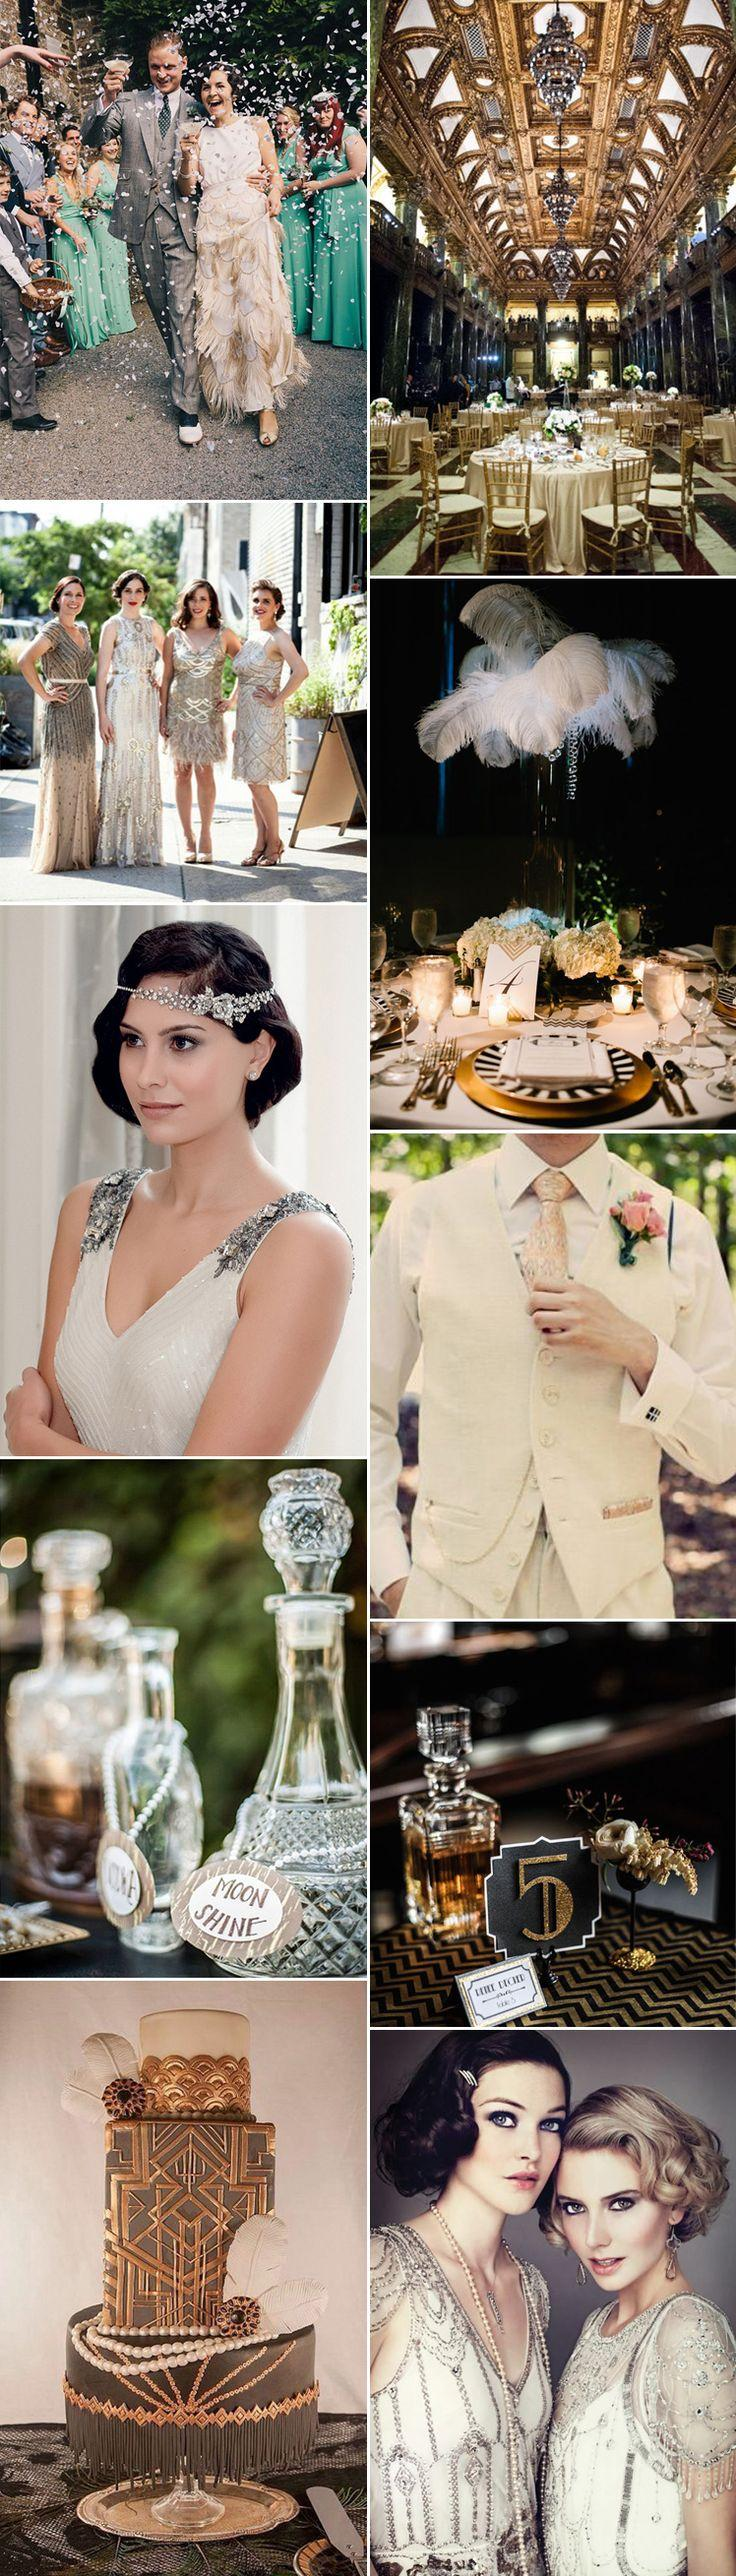 Wedding - Gatsby Glamour: 1920s Wedding Ideas